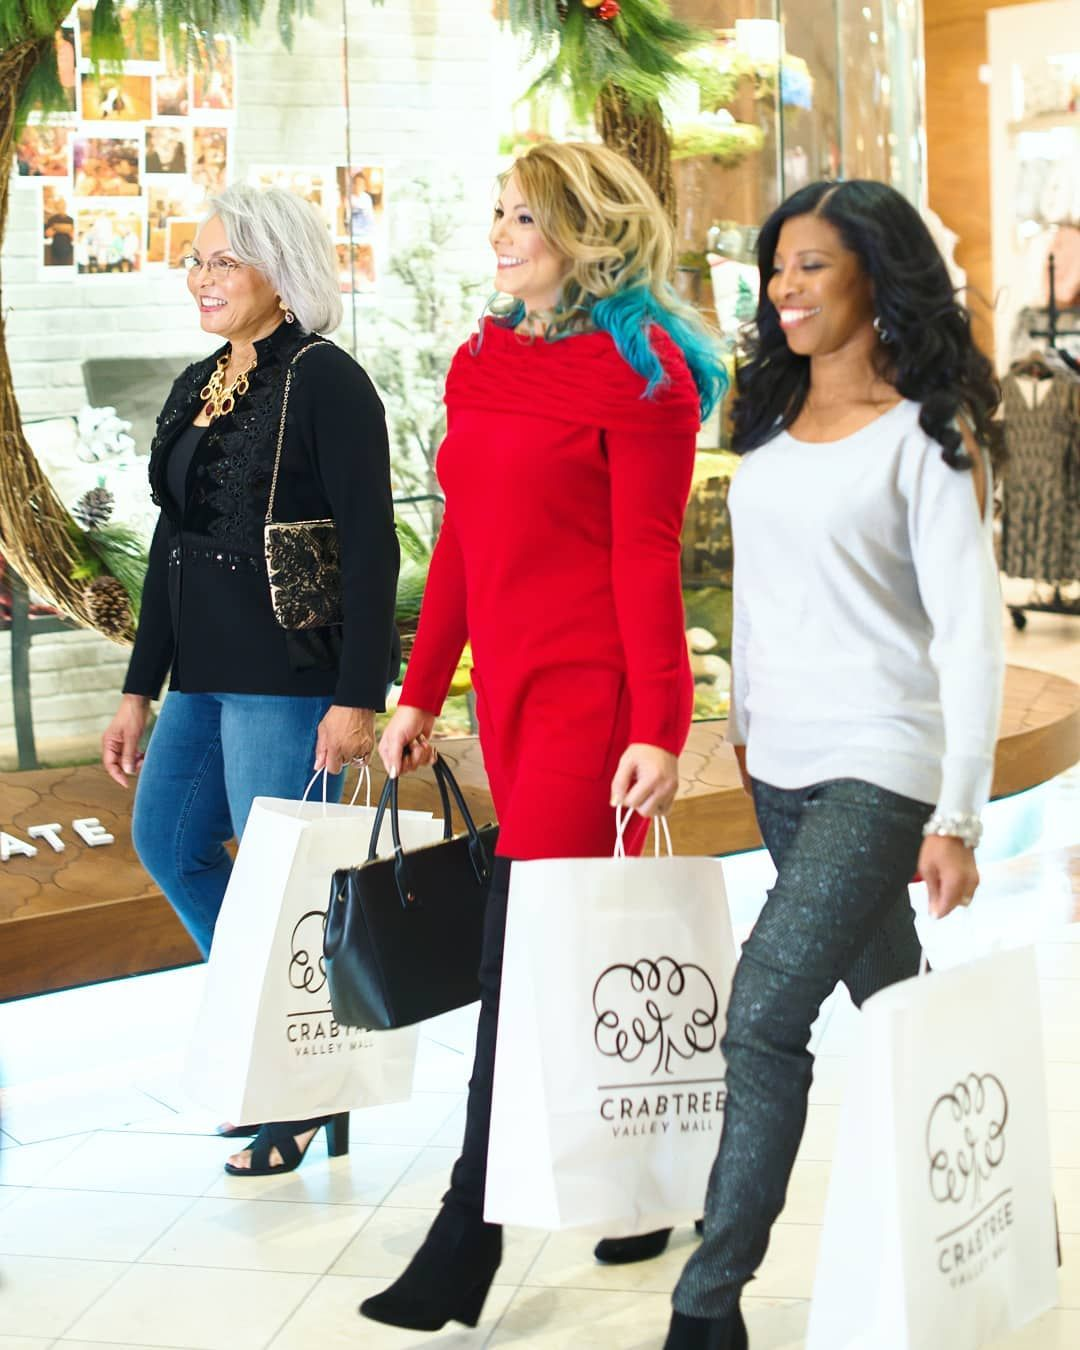 Crabtree valley mall shopping shoppers shop raleigh nc